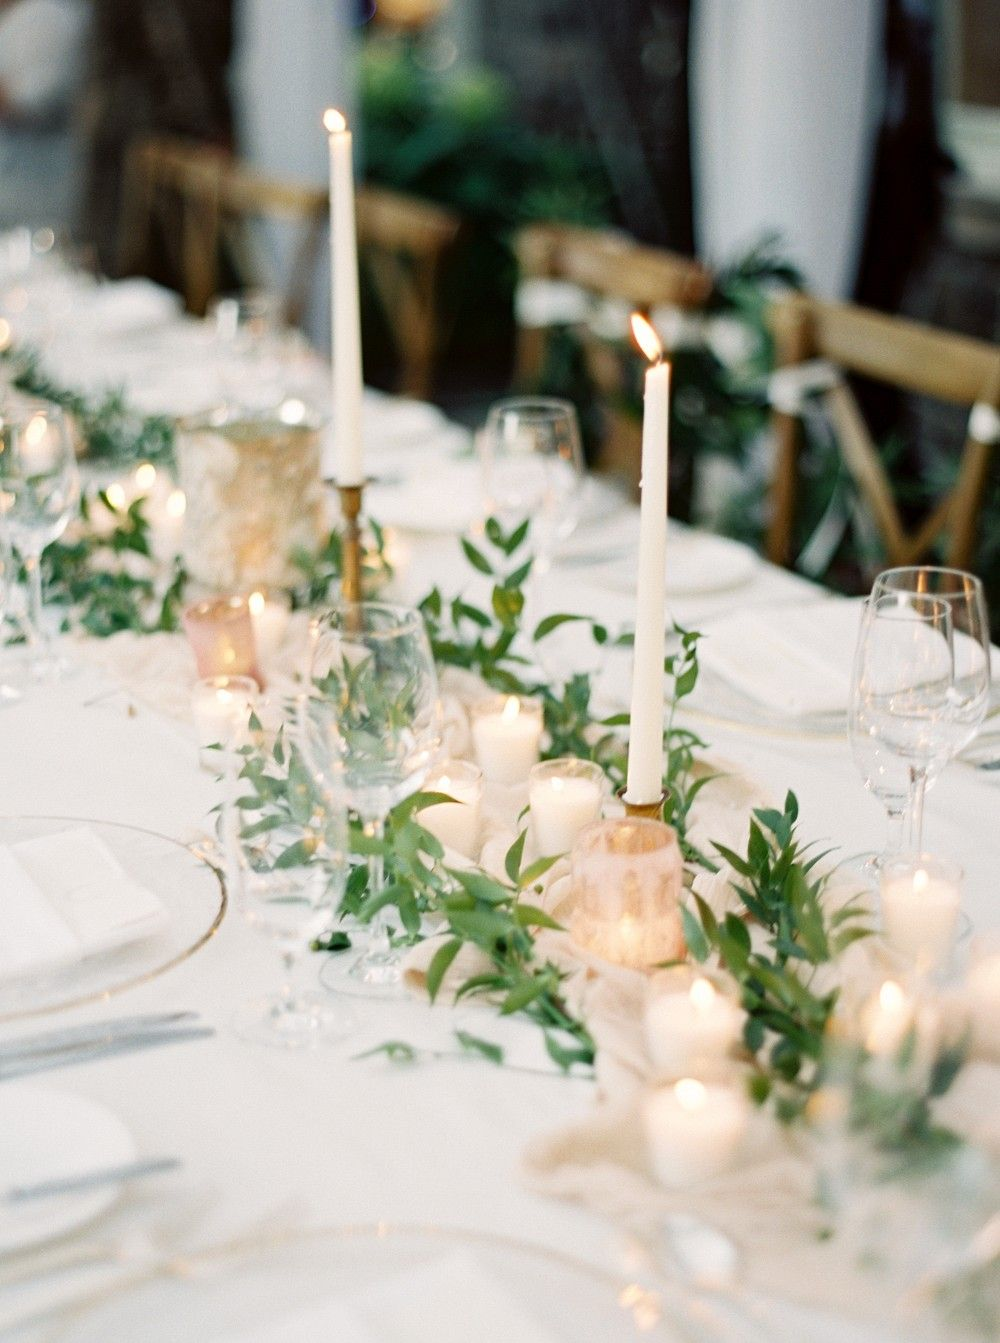 Romantic and organic blush real wedding by when he found her wedding